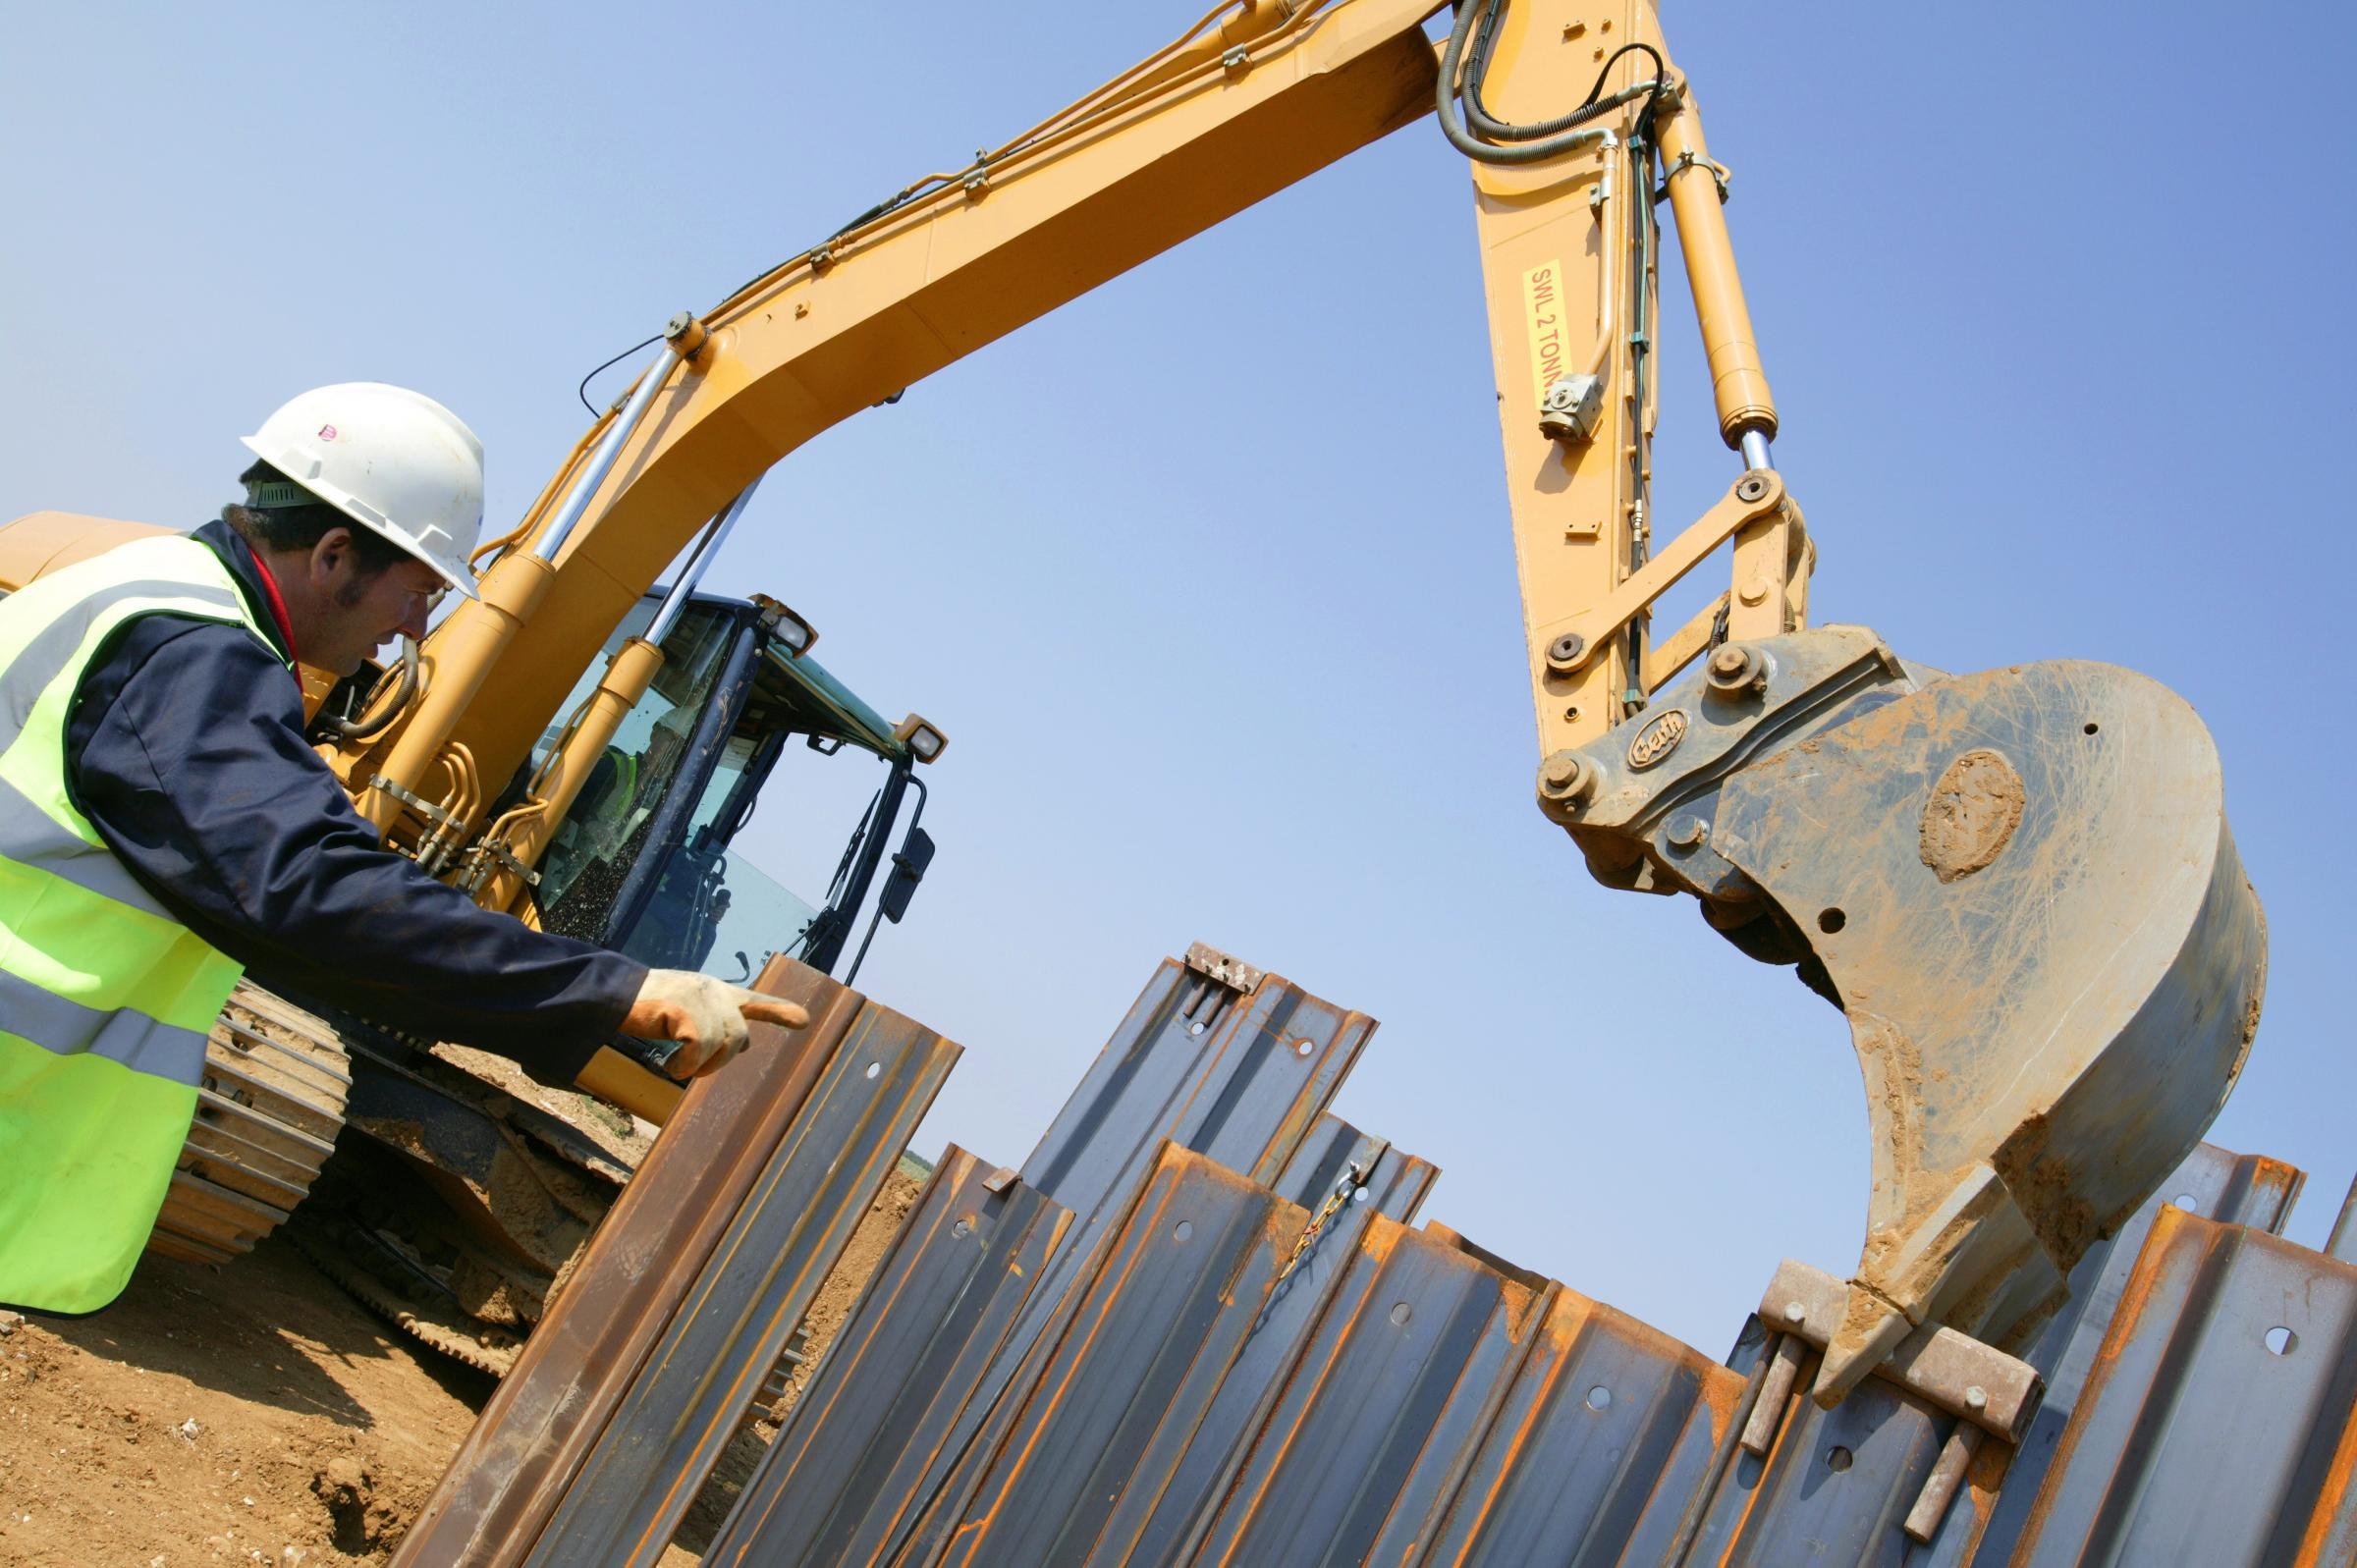 Up to 3,000 construction jobs could be created by 2019